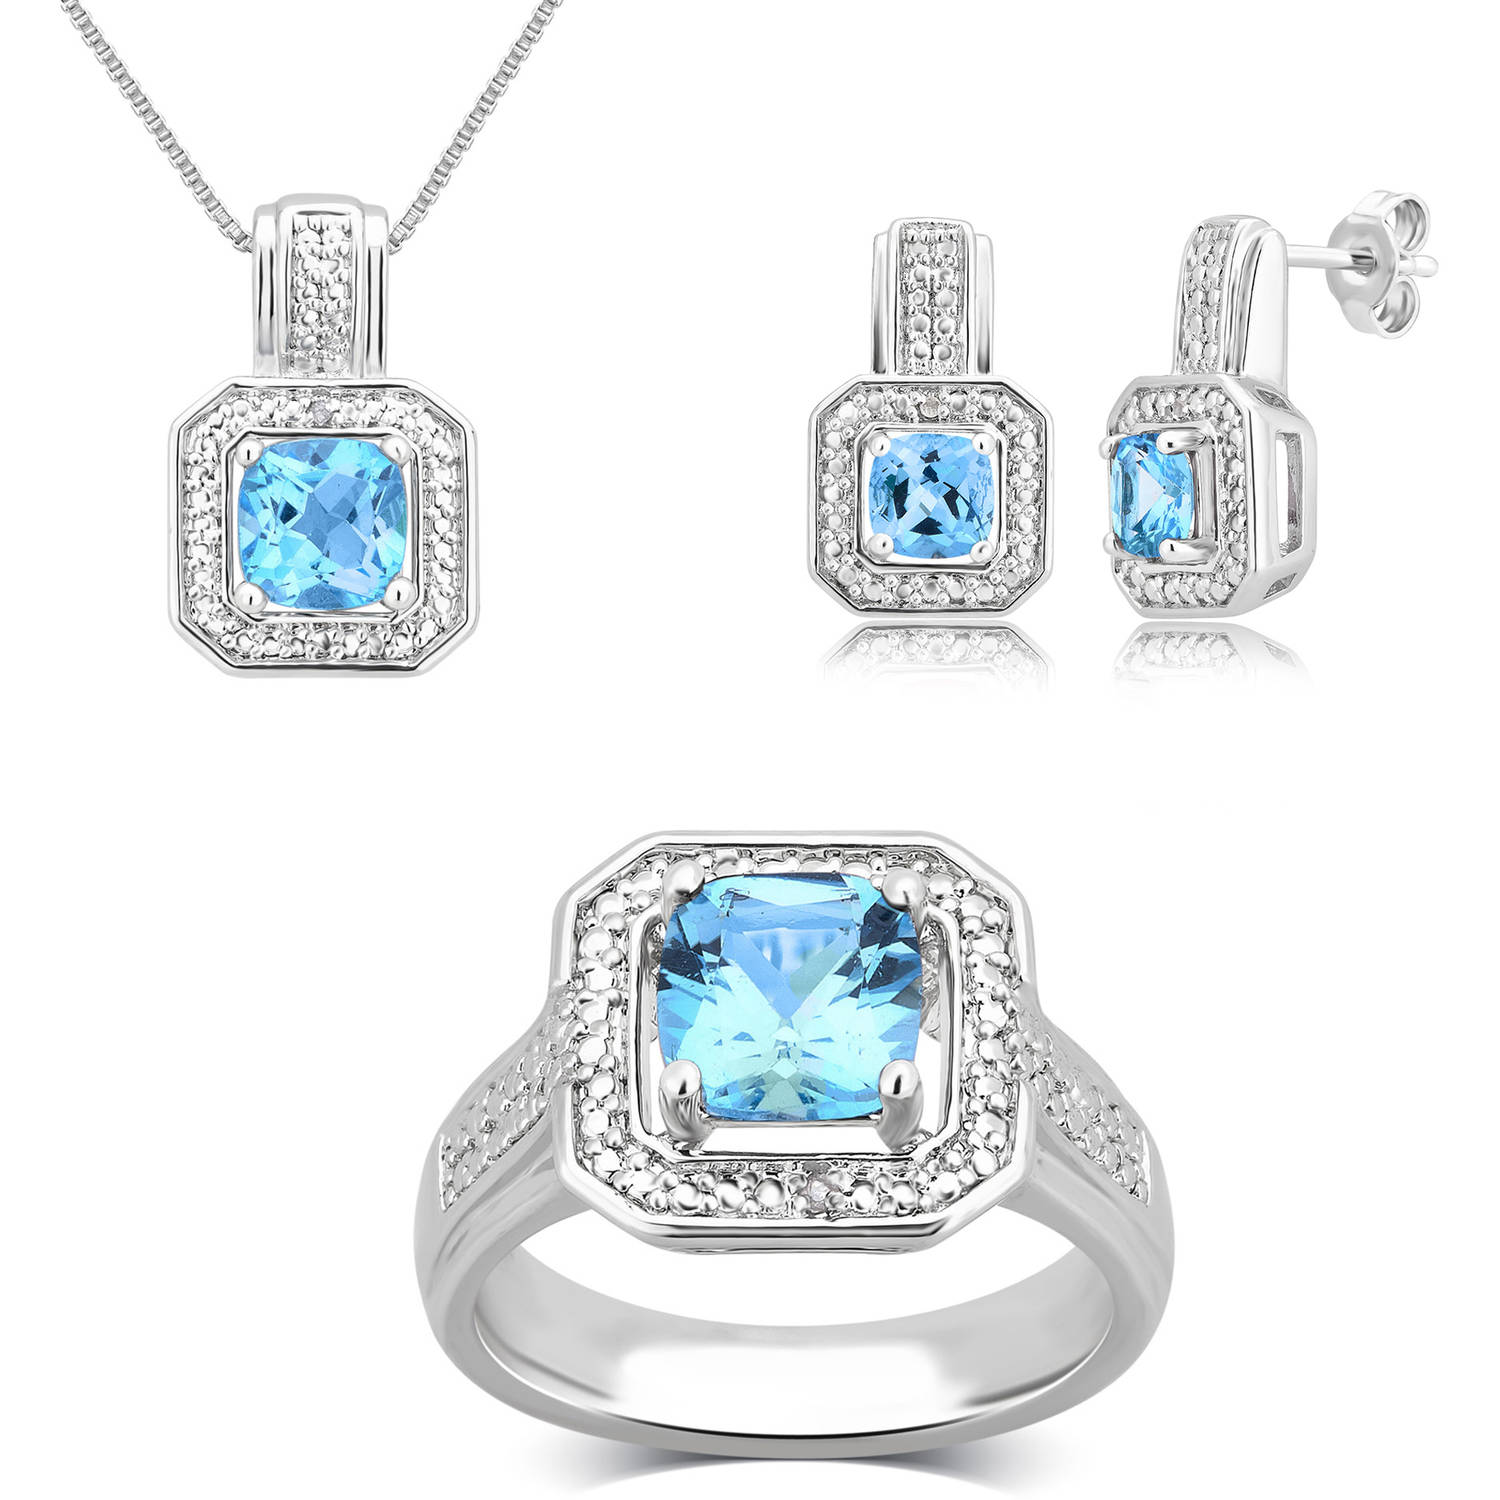 """Round White Diamond Accent and Blue Topaz Silver-Tone Ring, Earrings and Pendant Set, 18"""" by Unique Designs Inc."""